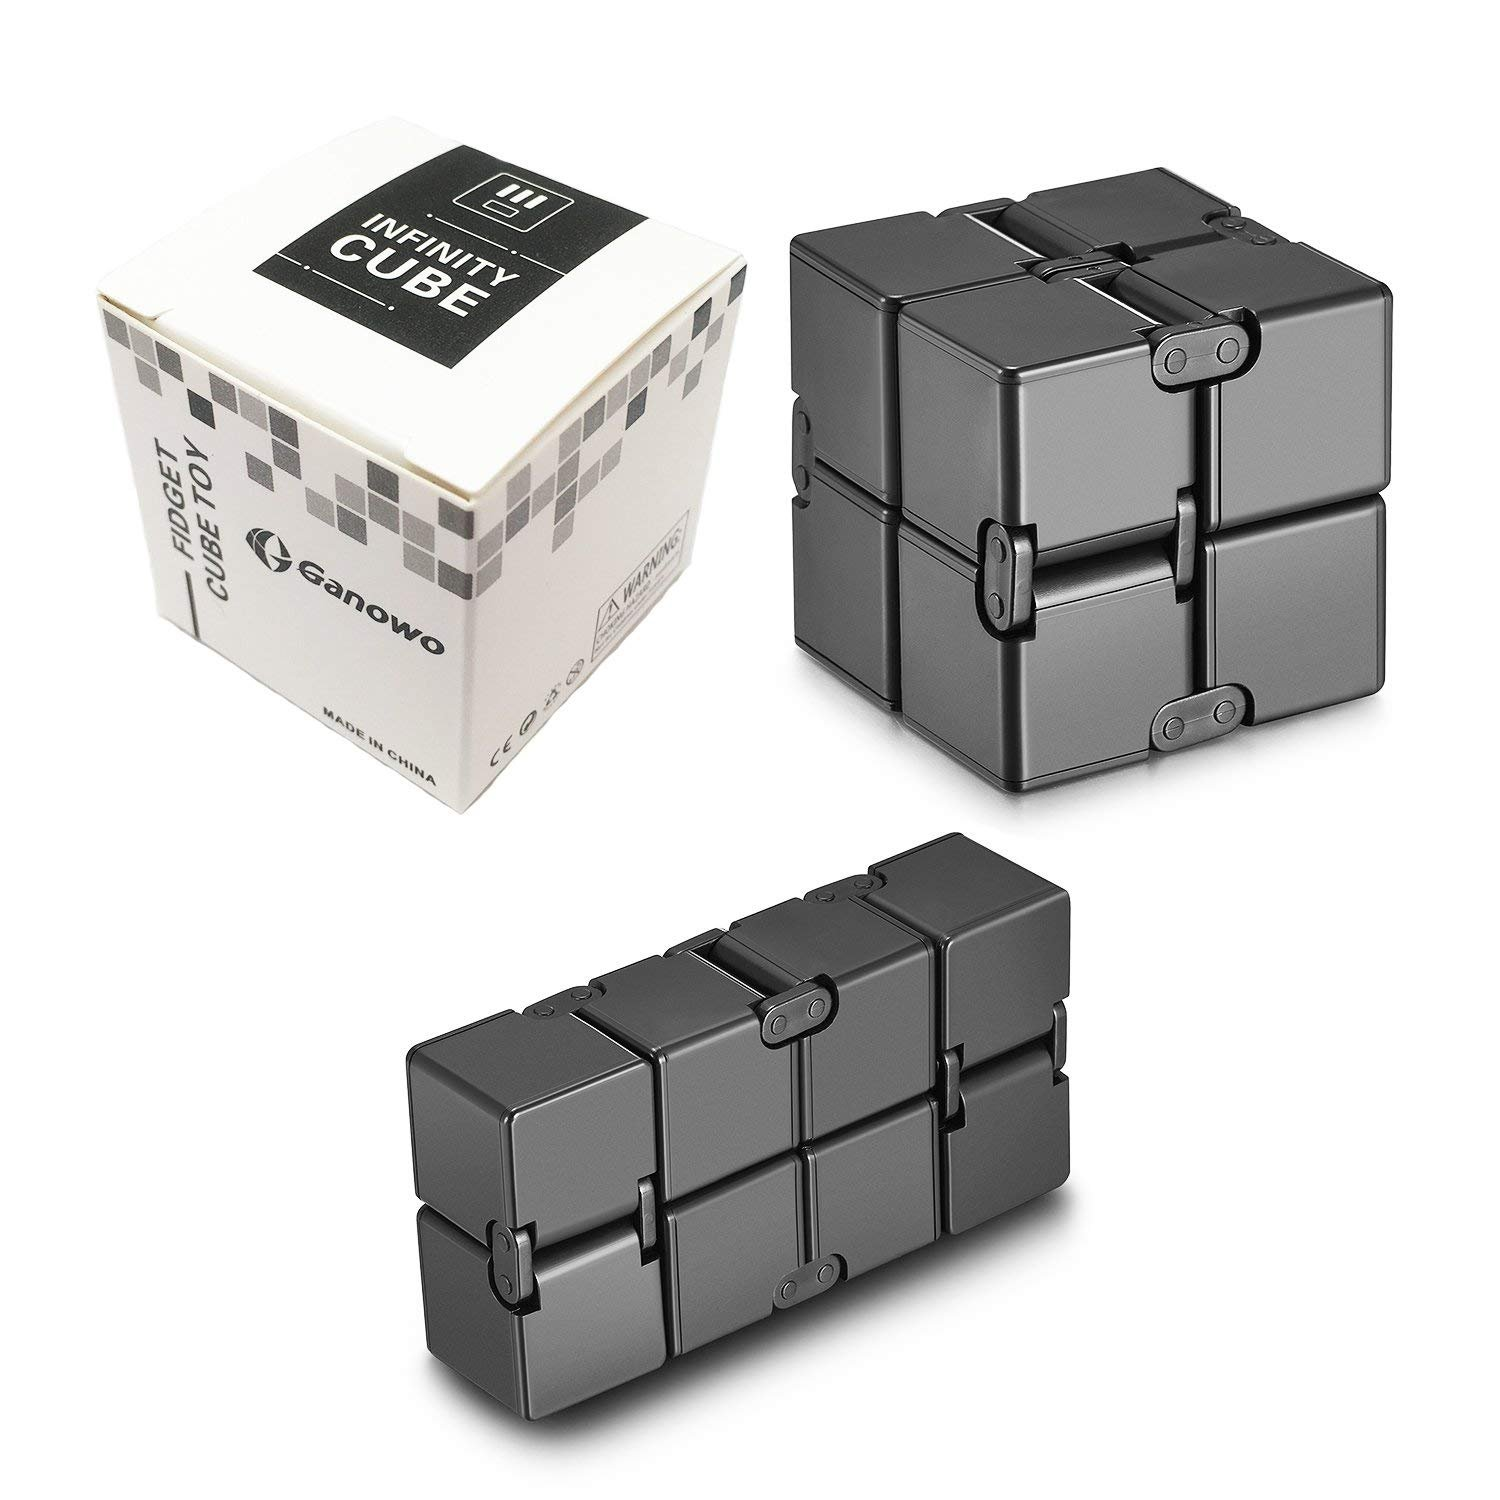 Infinity Cube Fidget Cube Toy for Adults & Kids Relieve Stress & Anxiety Hand Fidget Stress Reducer Best for ADD,ADHD,OCD,Anxiety Disorder,Autism by Ganowo (Black)